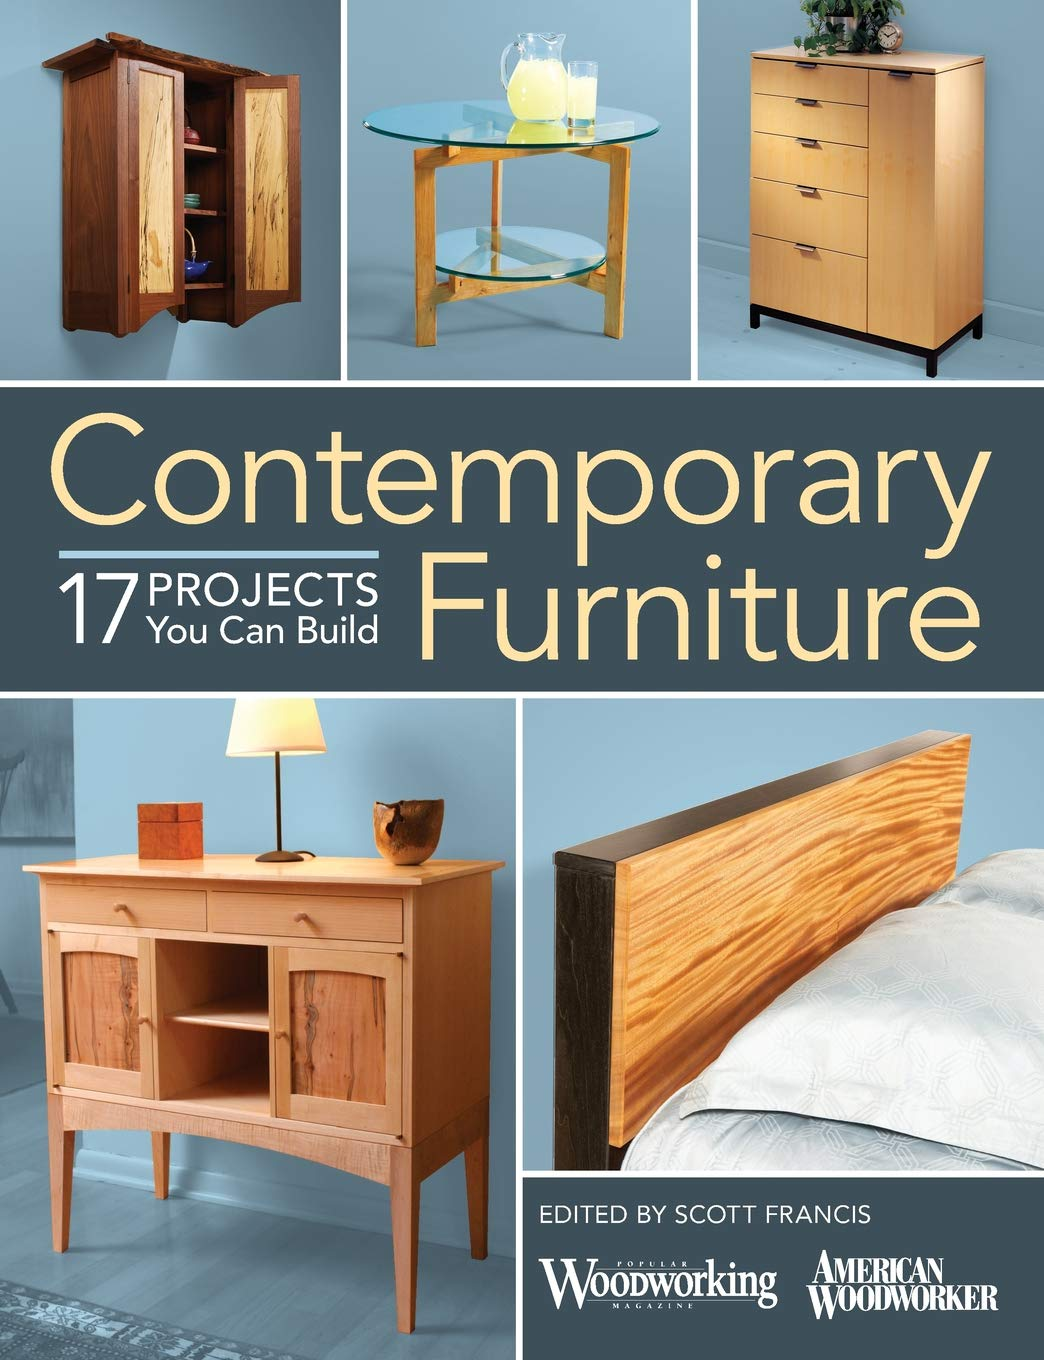 Contemporary furniture 17 projects you can build paperback april 29 2016